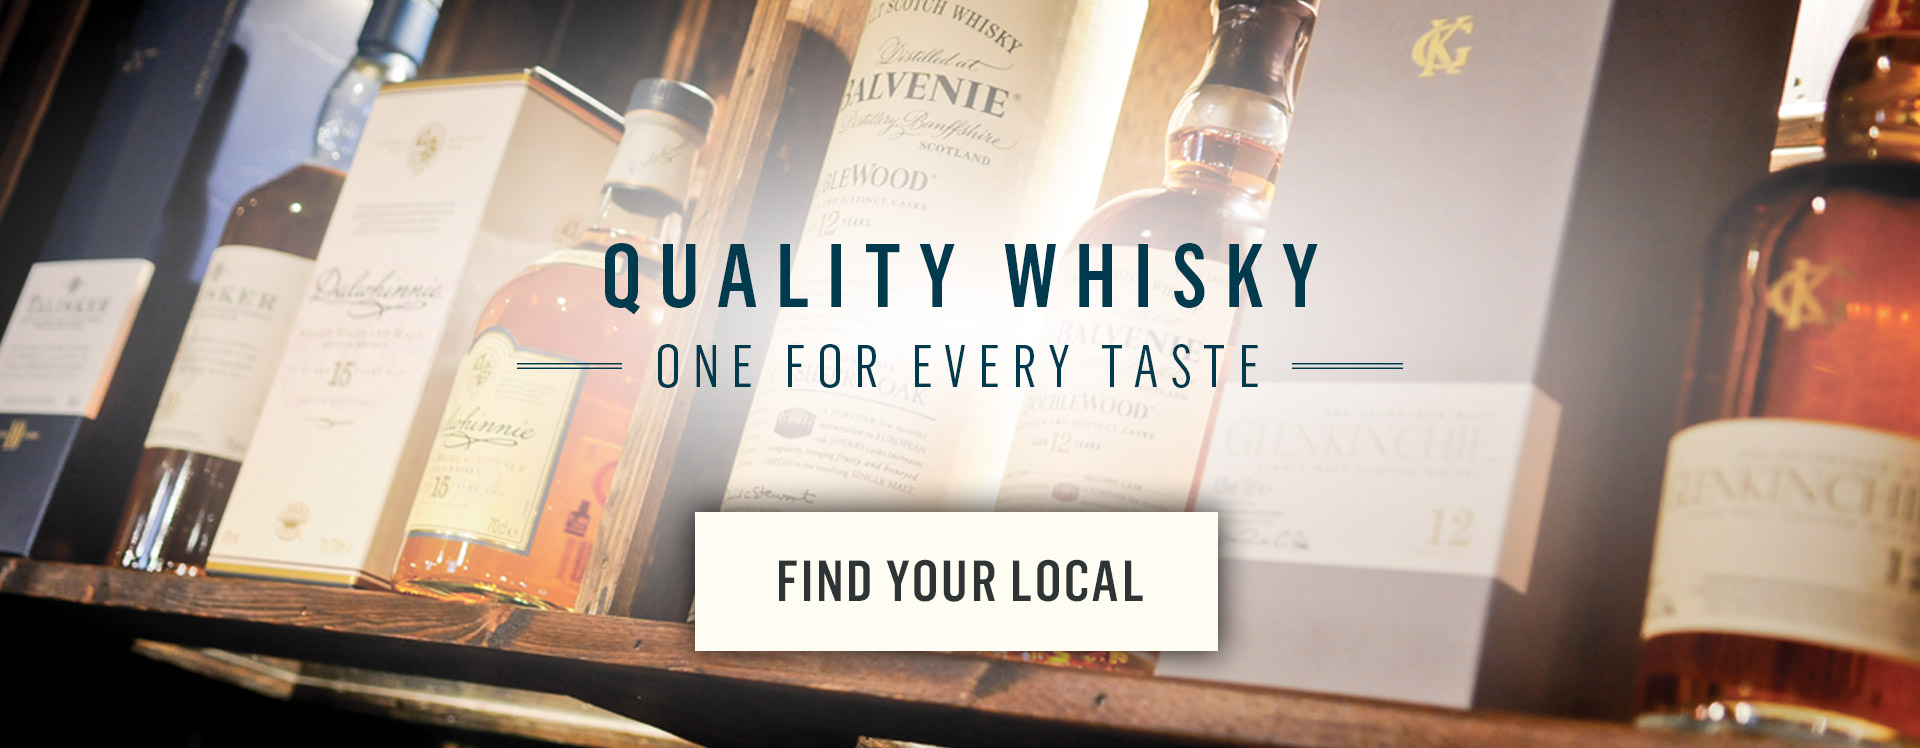 Quality Whisky